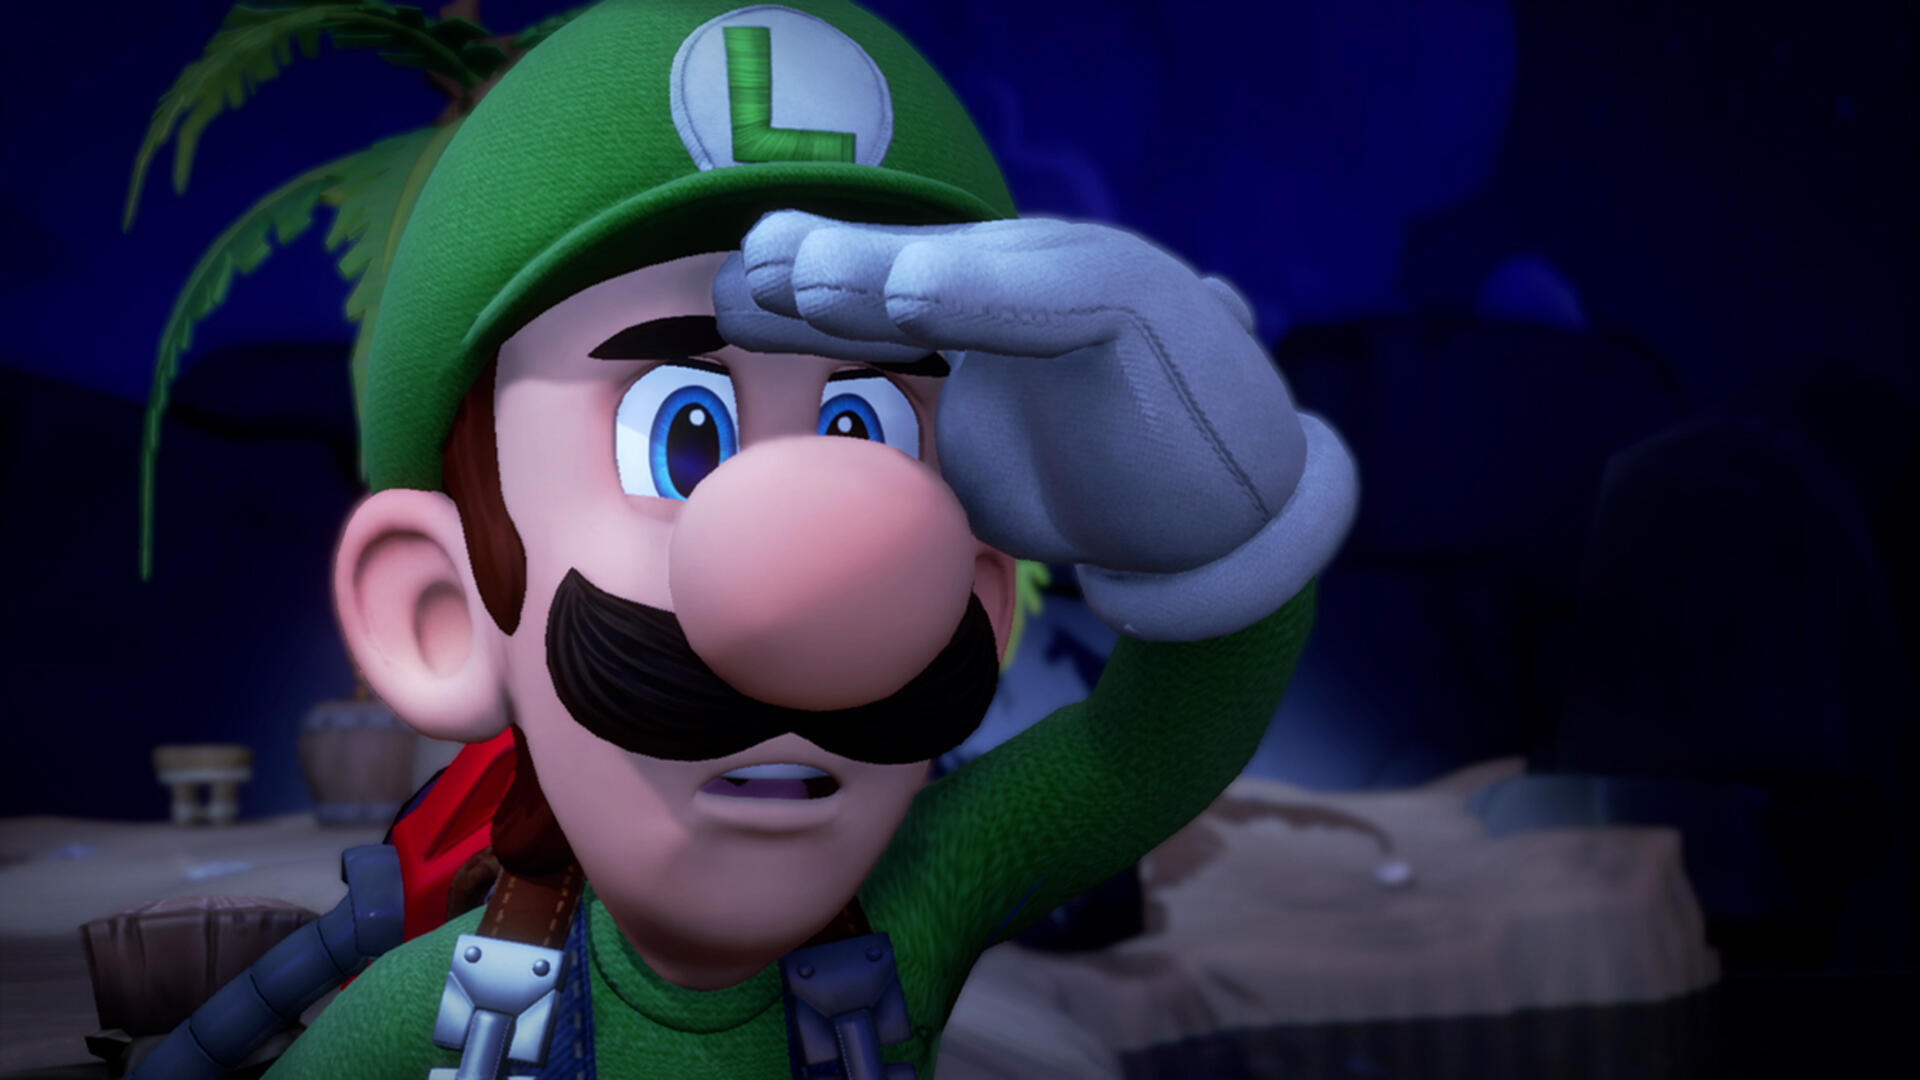 Luigi's Mansion 3 References One of the Best Horror Films of All Time